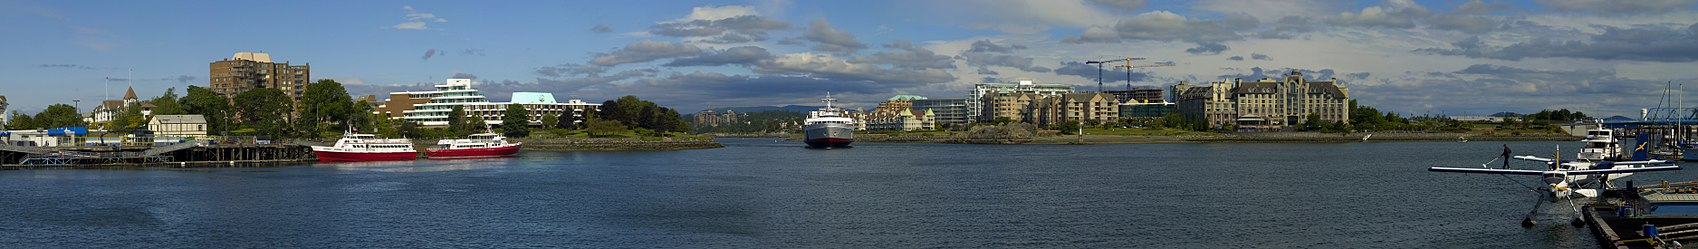 MV Coho in Victoria's inner harbor.jpg